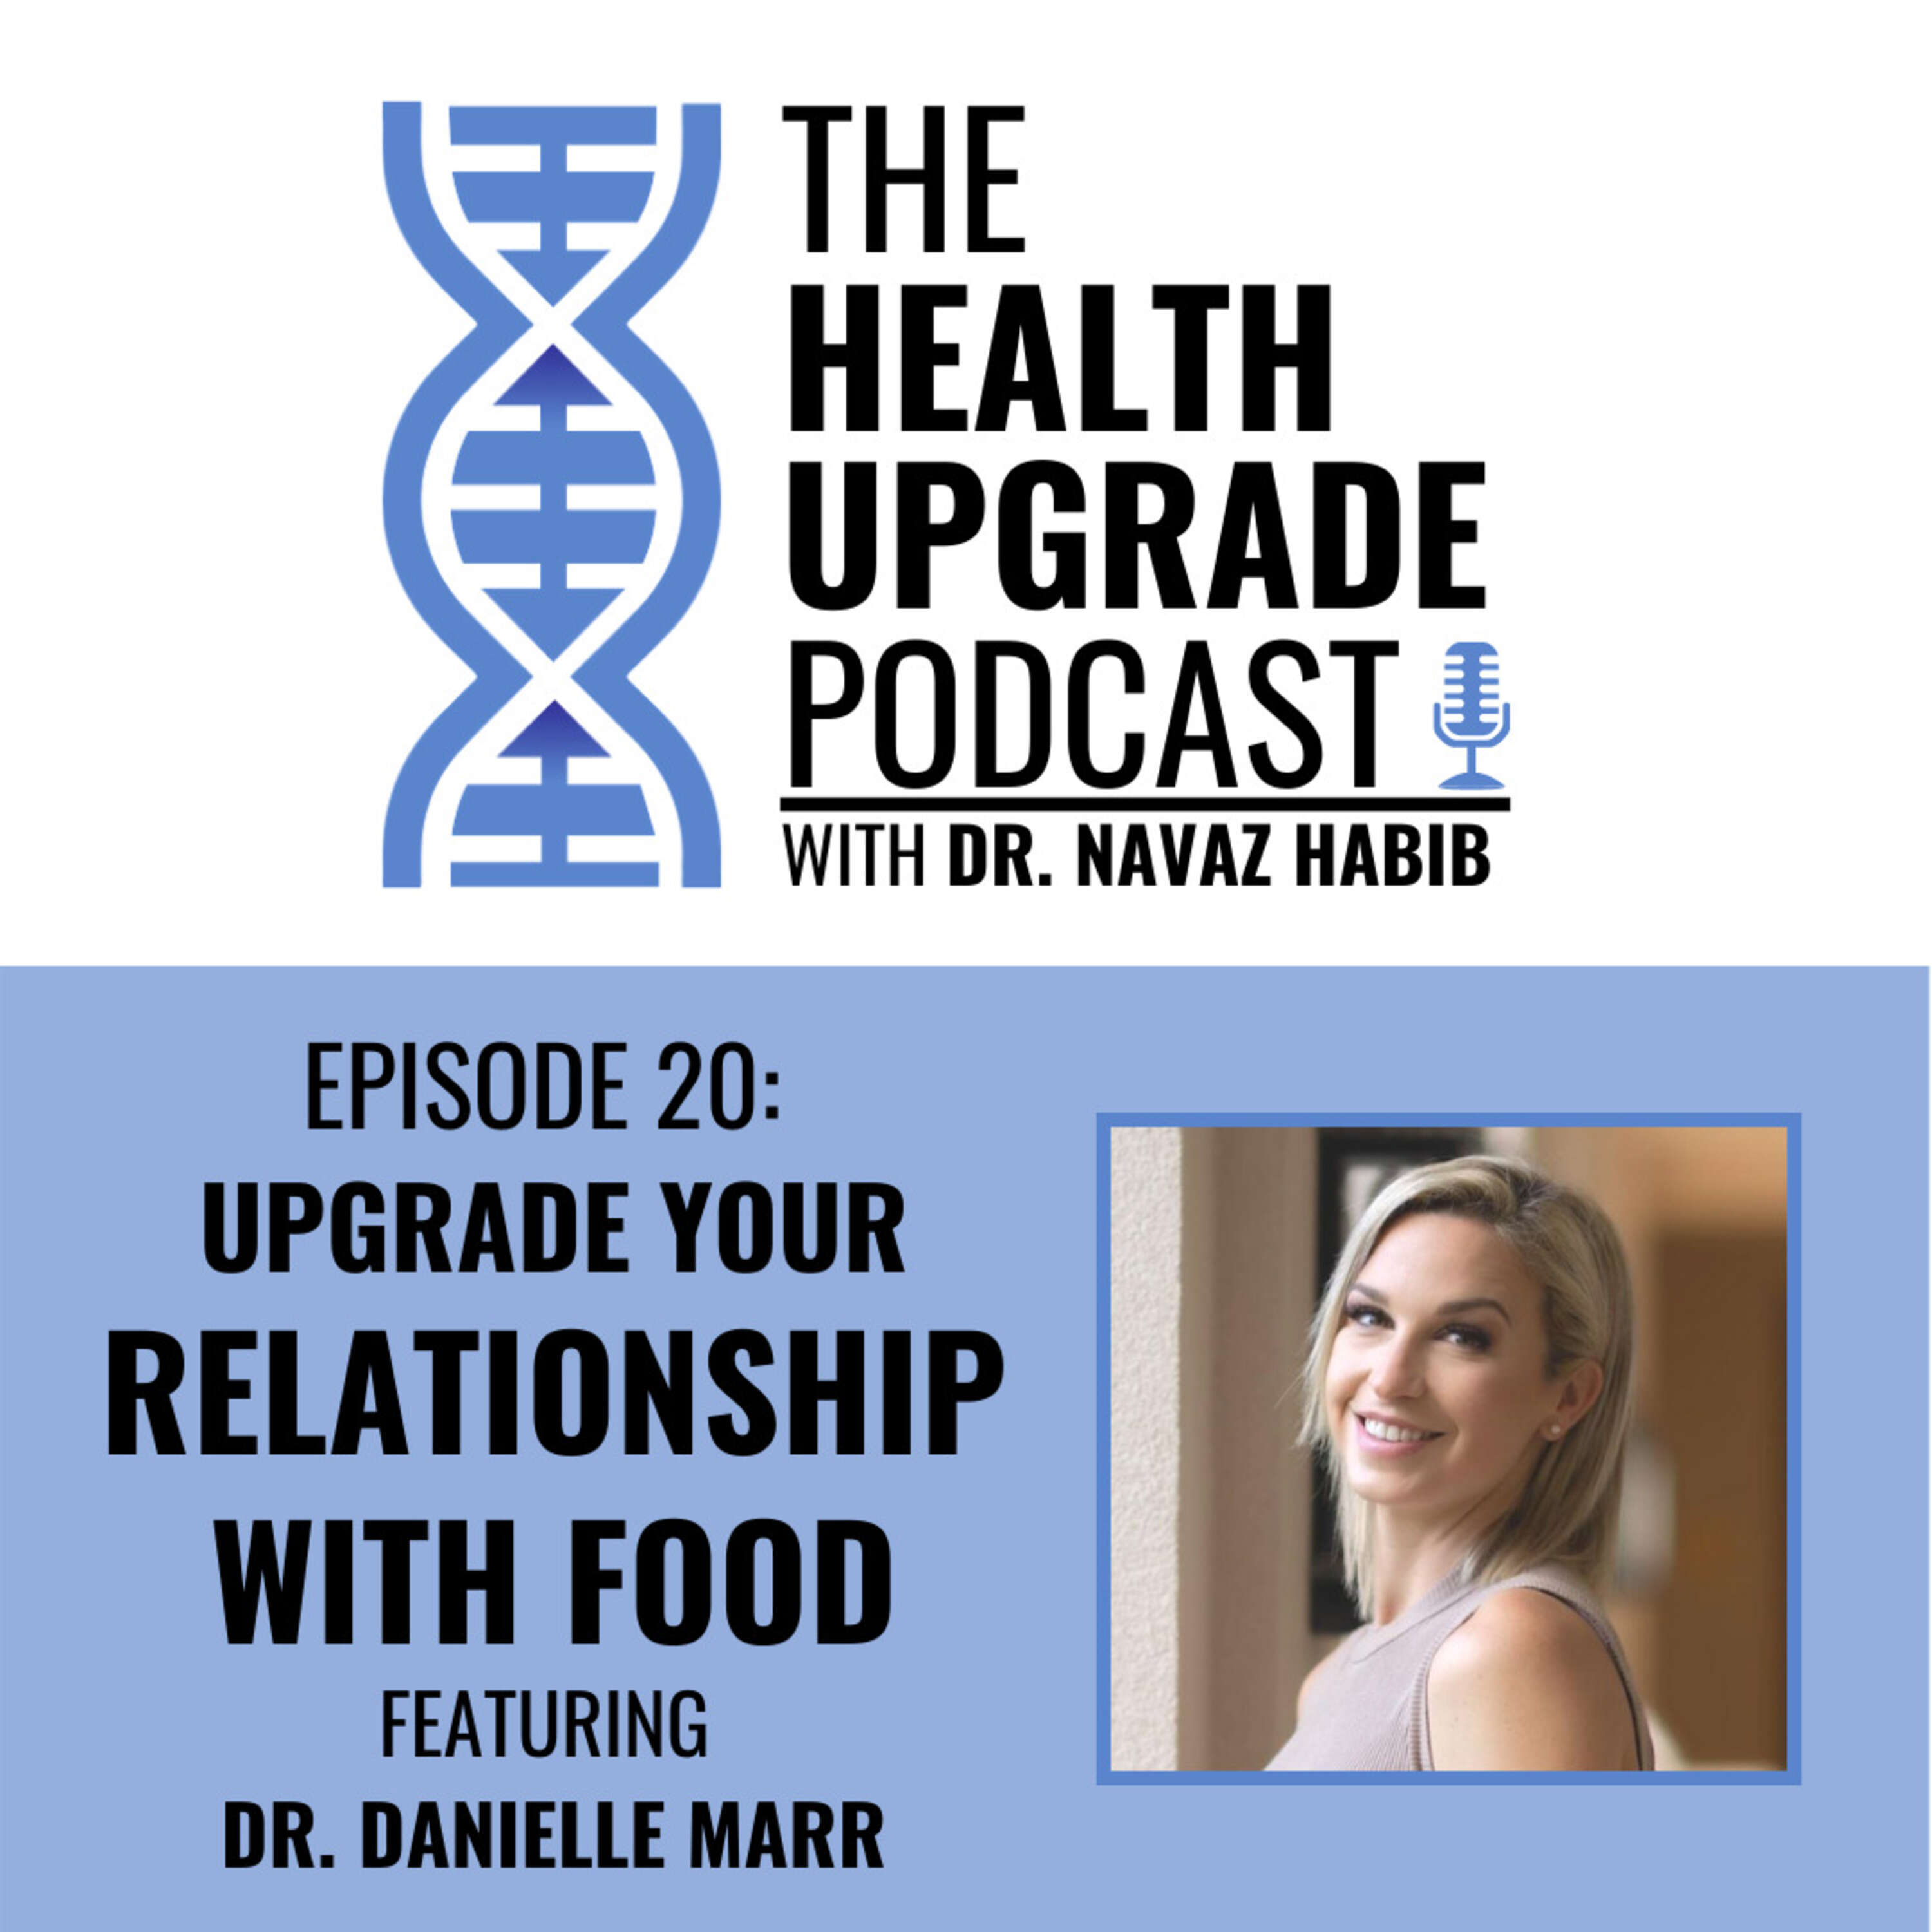 Upgrade your relationship with food - featuring Dr. Danielle Marr